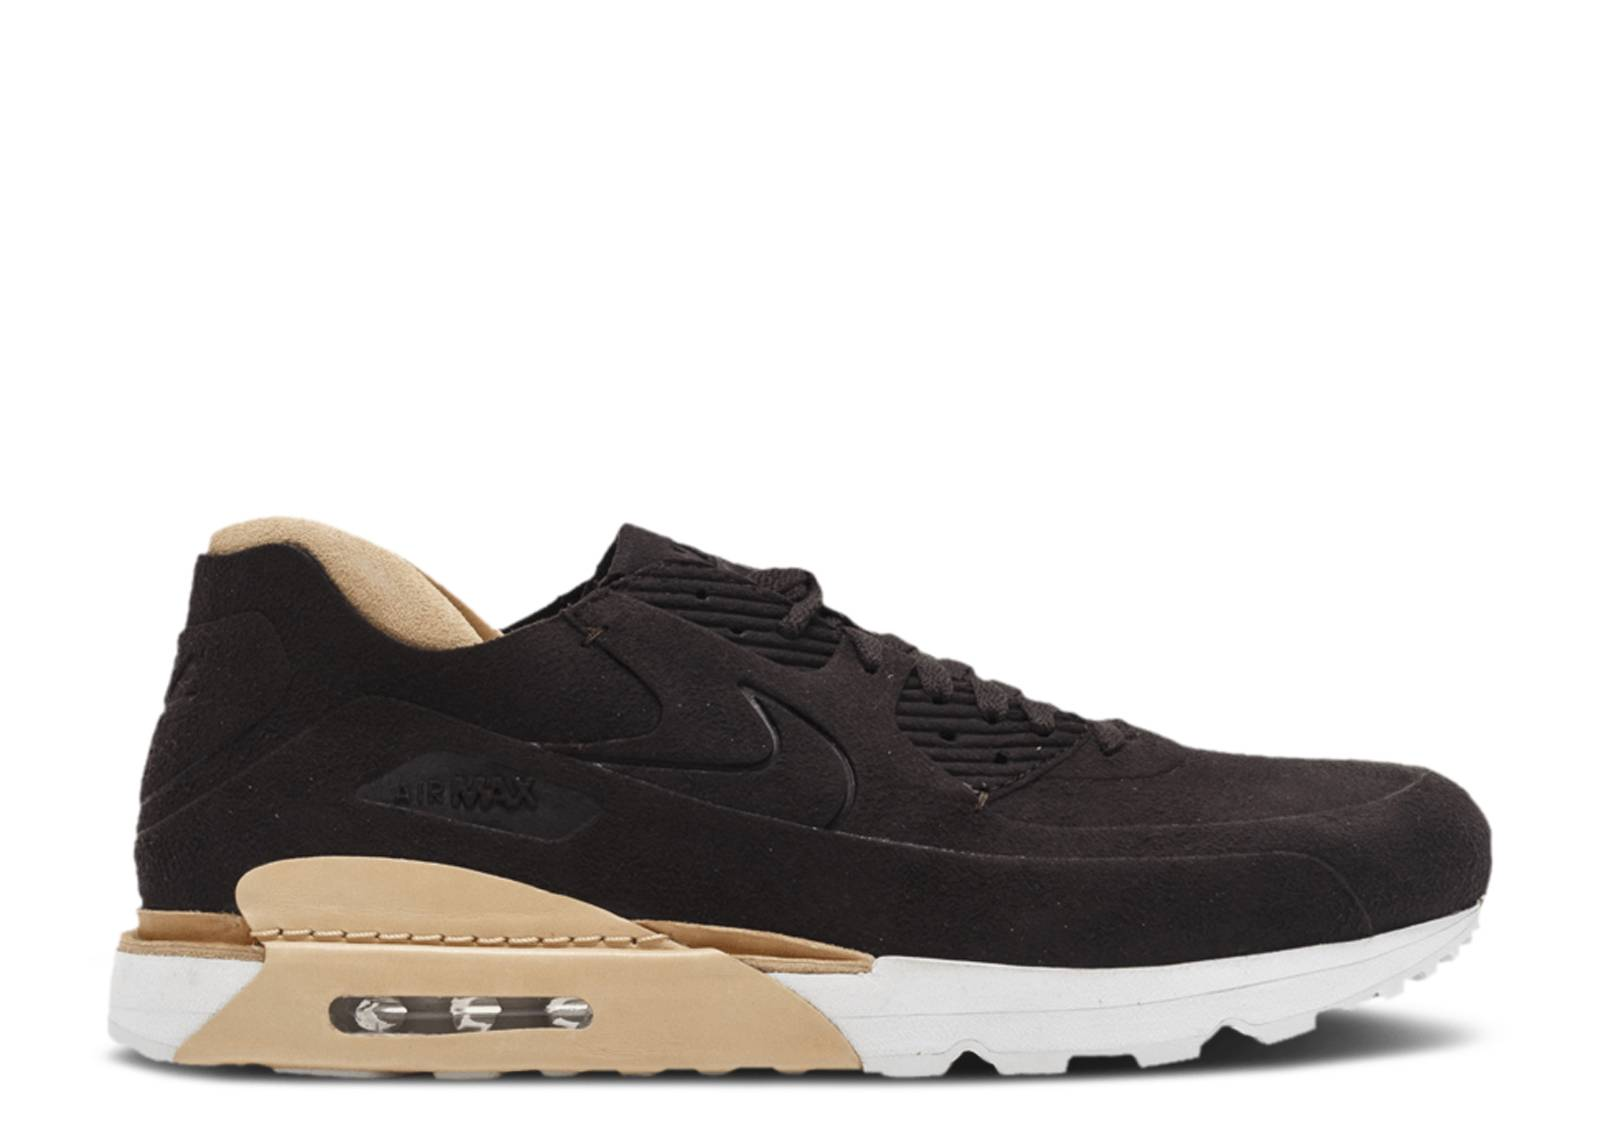 d3fd624f9e Air Max 90 - Nike - 885891 200 - velvet brown/velvet brown | Flight Club